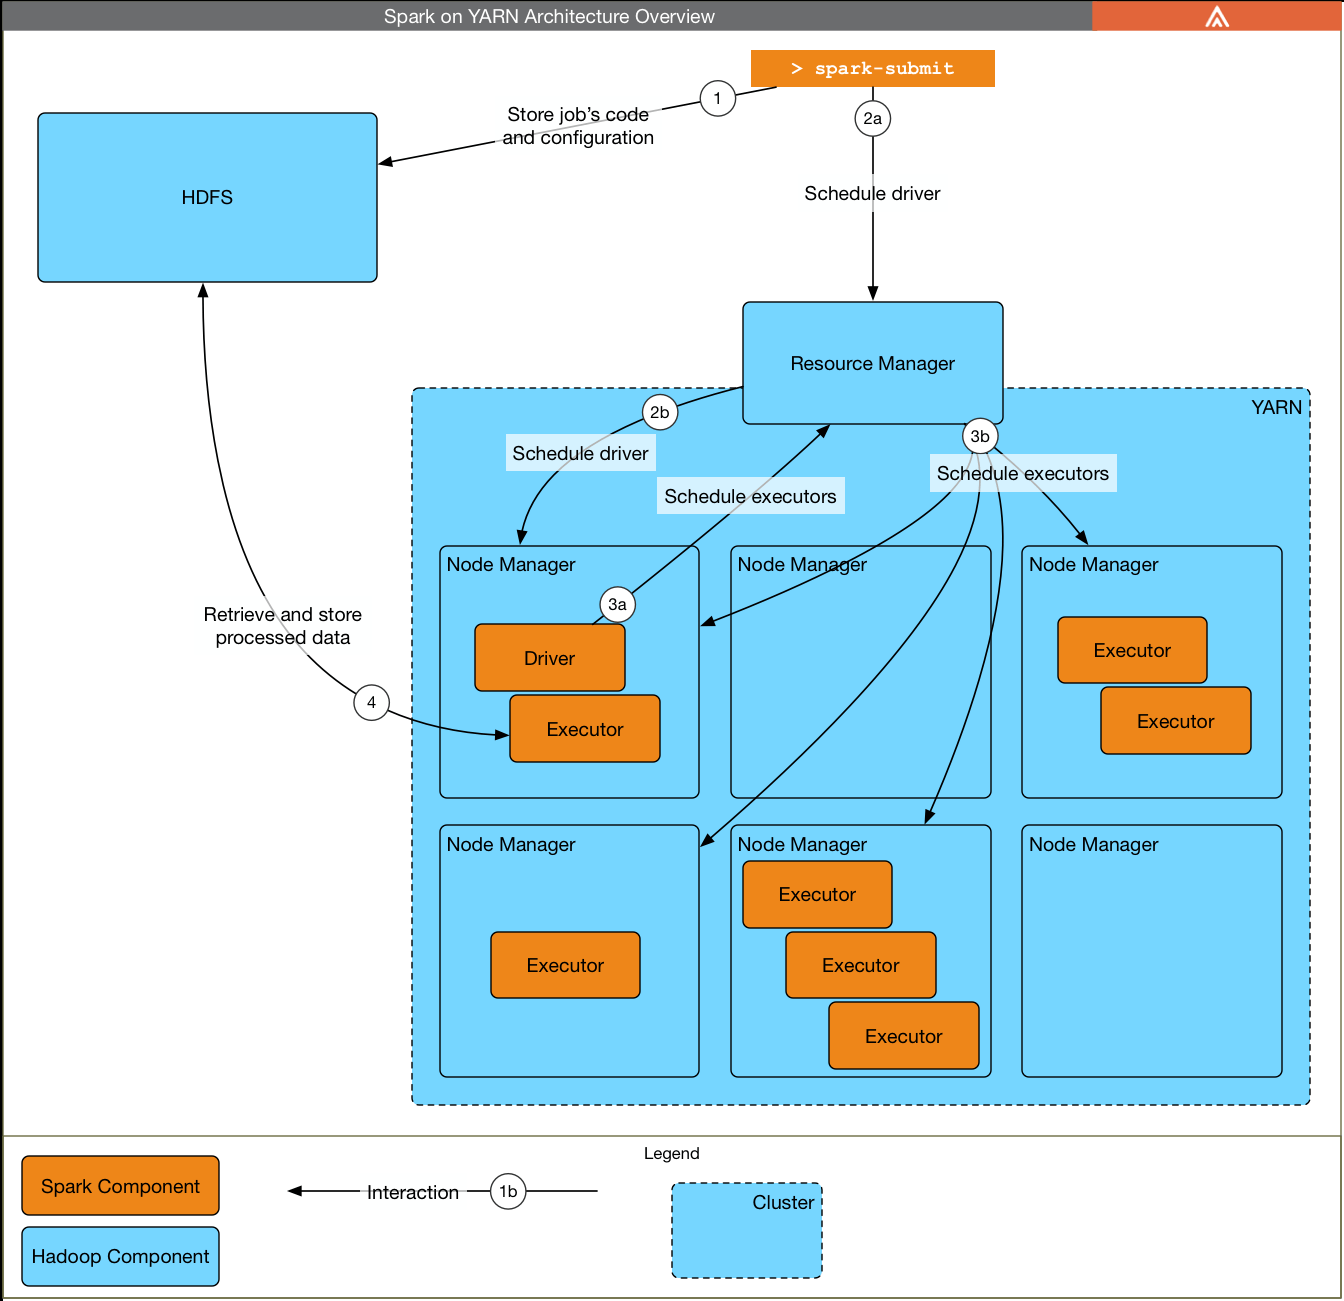 jvm architecture diagram signal stat 900 turn switch wiring apache spark on yarn security model analysis